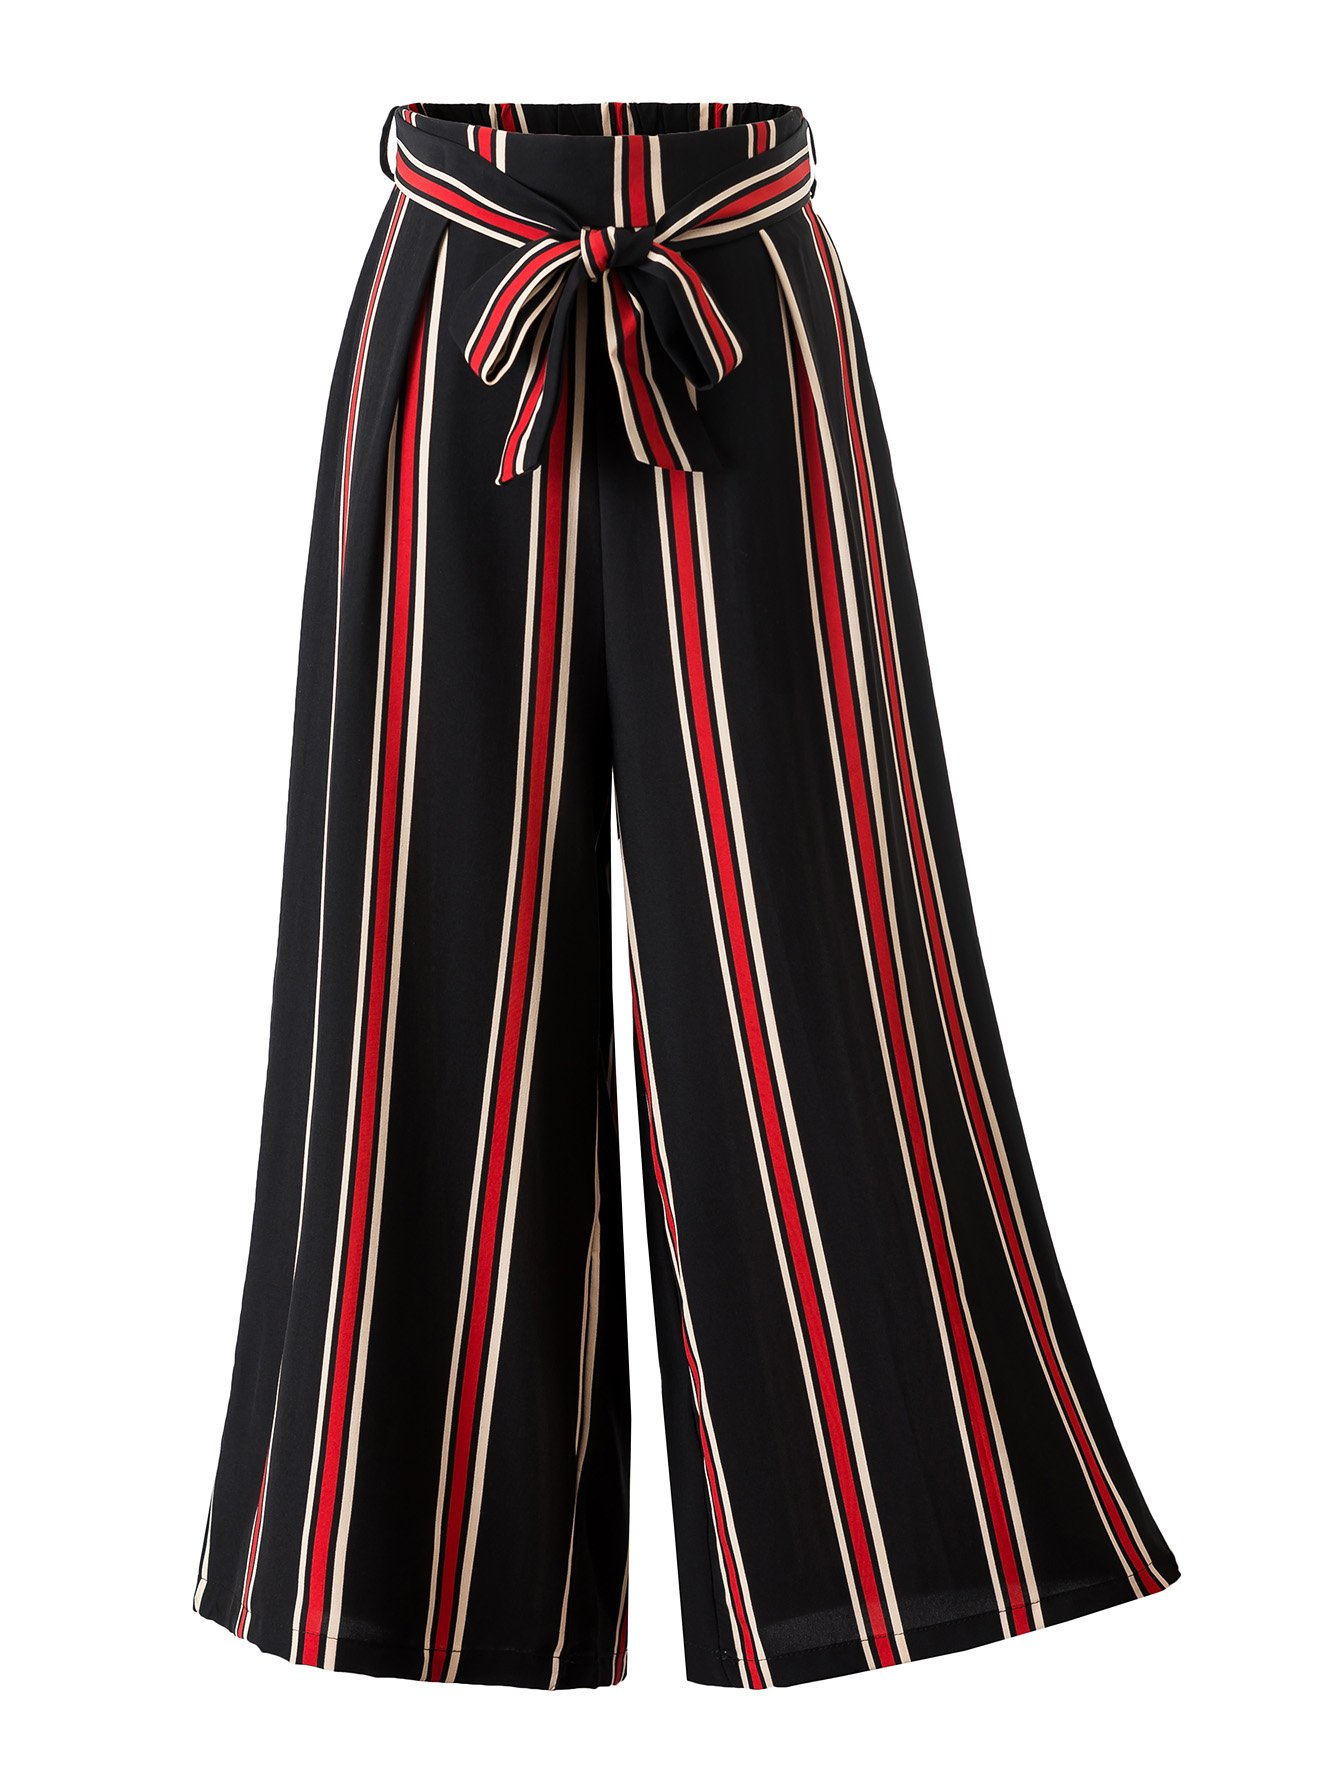 HUILAN Women's Hot Fashion Tenths Wide Leg Pants Bowknot Belted Trousers (Small, Black & Red)